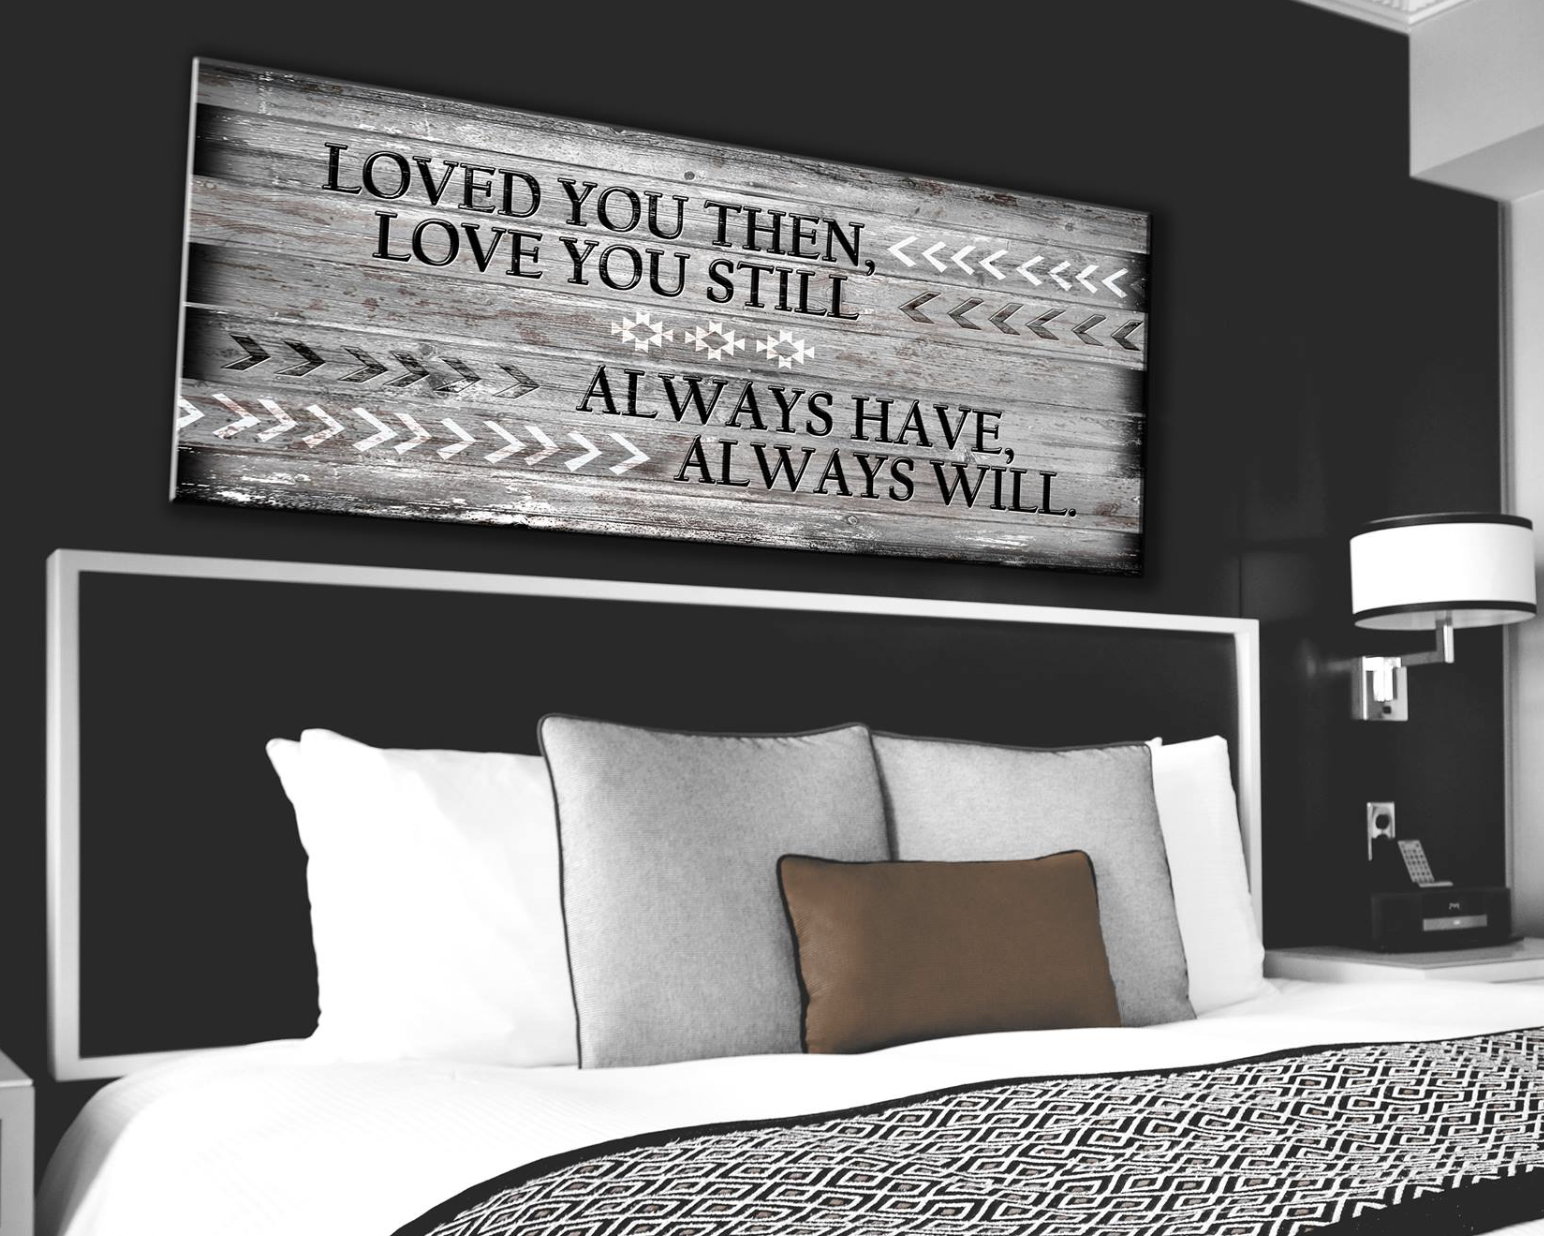 Bedroom Decor Wall Art: Love You Still Large Wall Art 2 Sizes Available  (Wood Frame Ready To Hang)